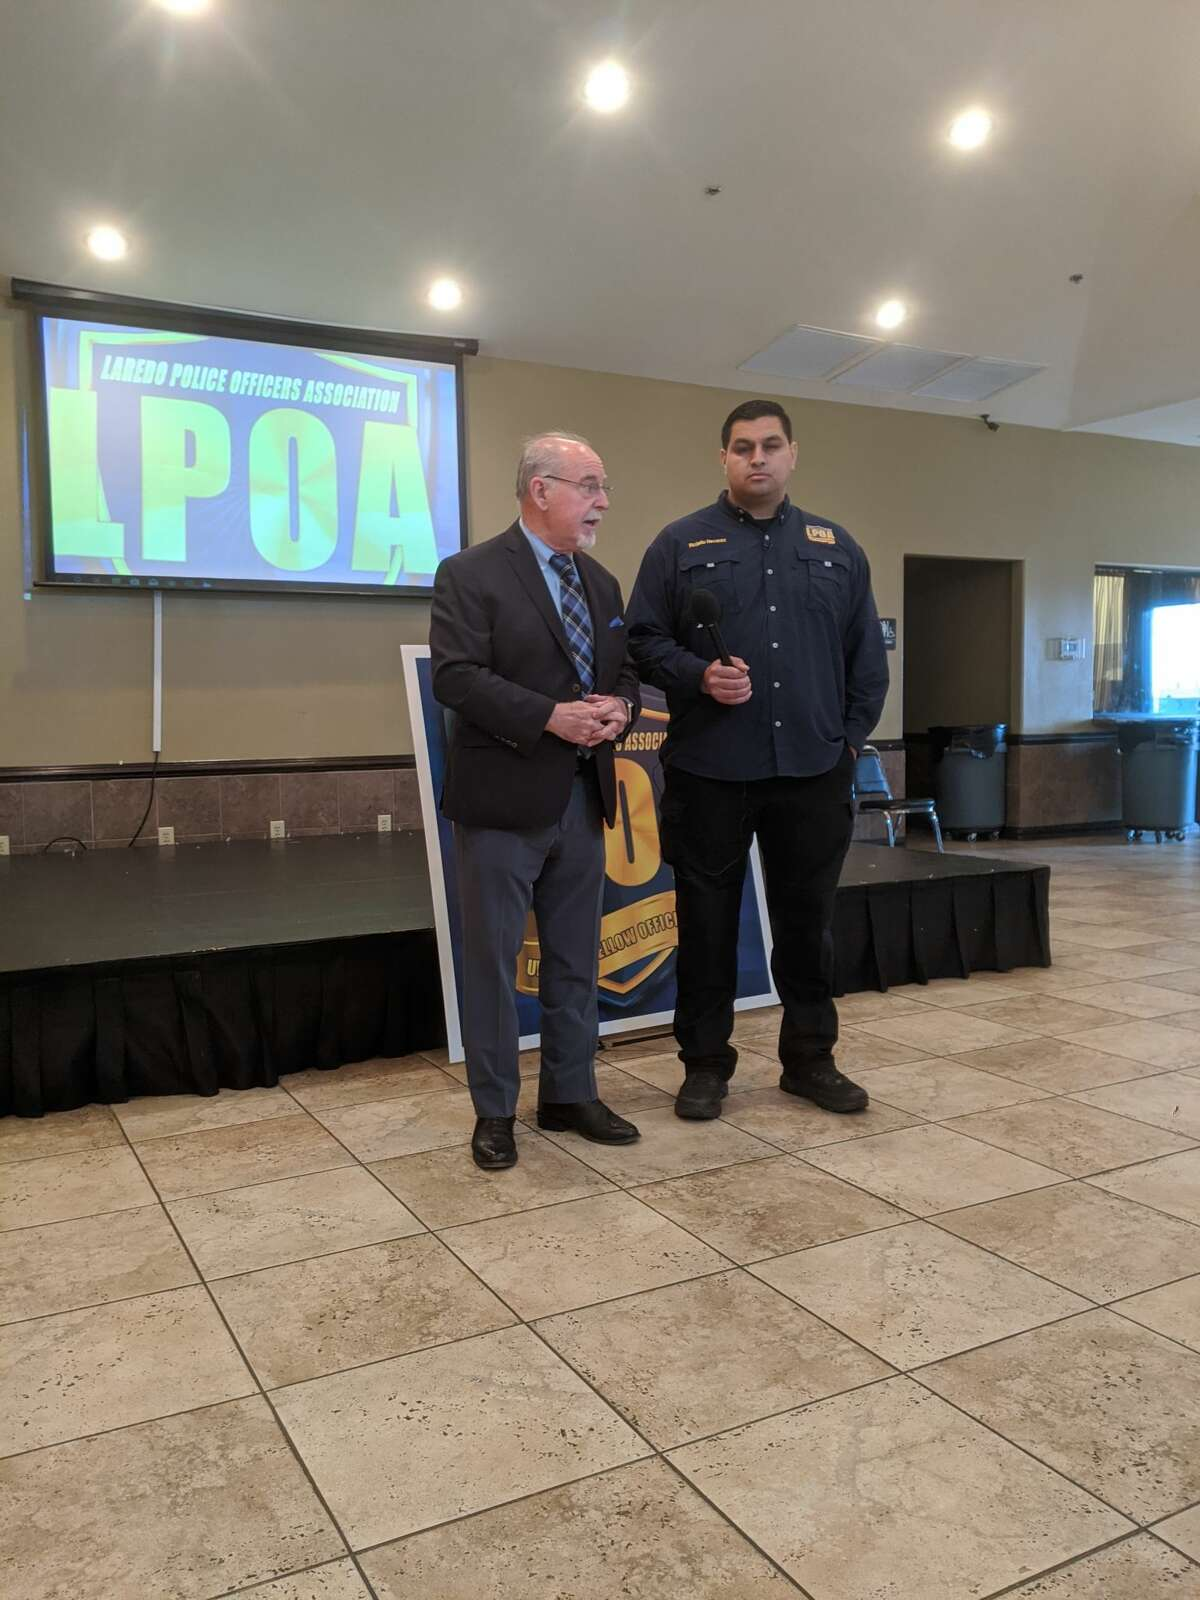 CLEAT Executive Director Charley Wilkinson speaks alongside LPOA President Rojelio Nevarez at a press conference Tuesday denouncing the release of suspected shooter Cesar Rene Terrazas, who posted bail on Jan. 31.